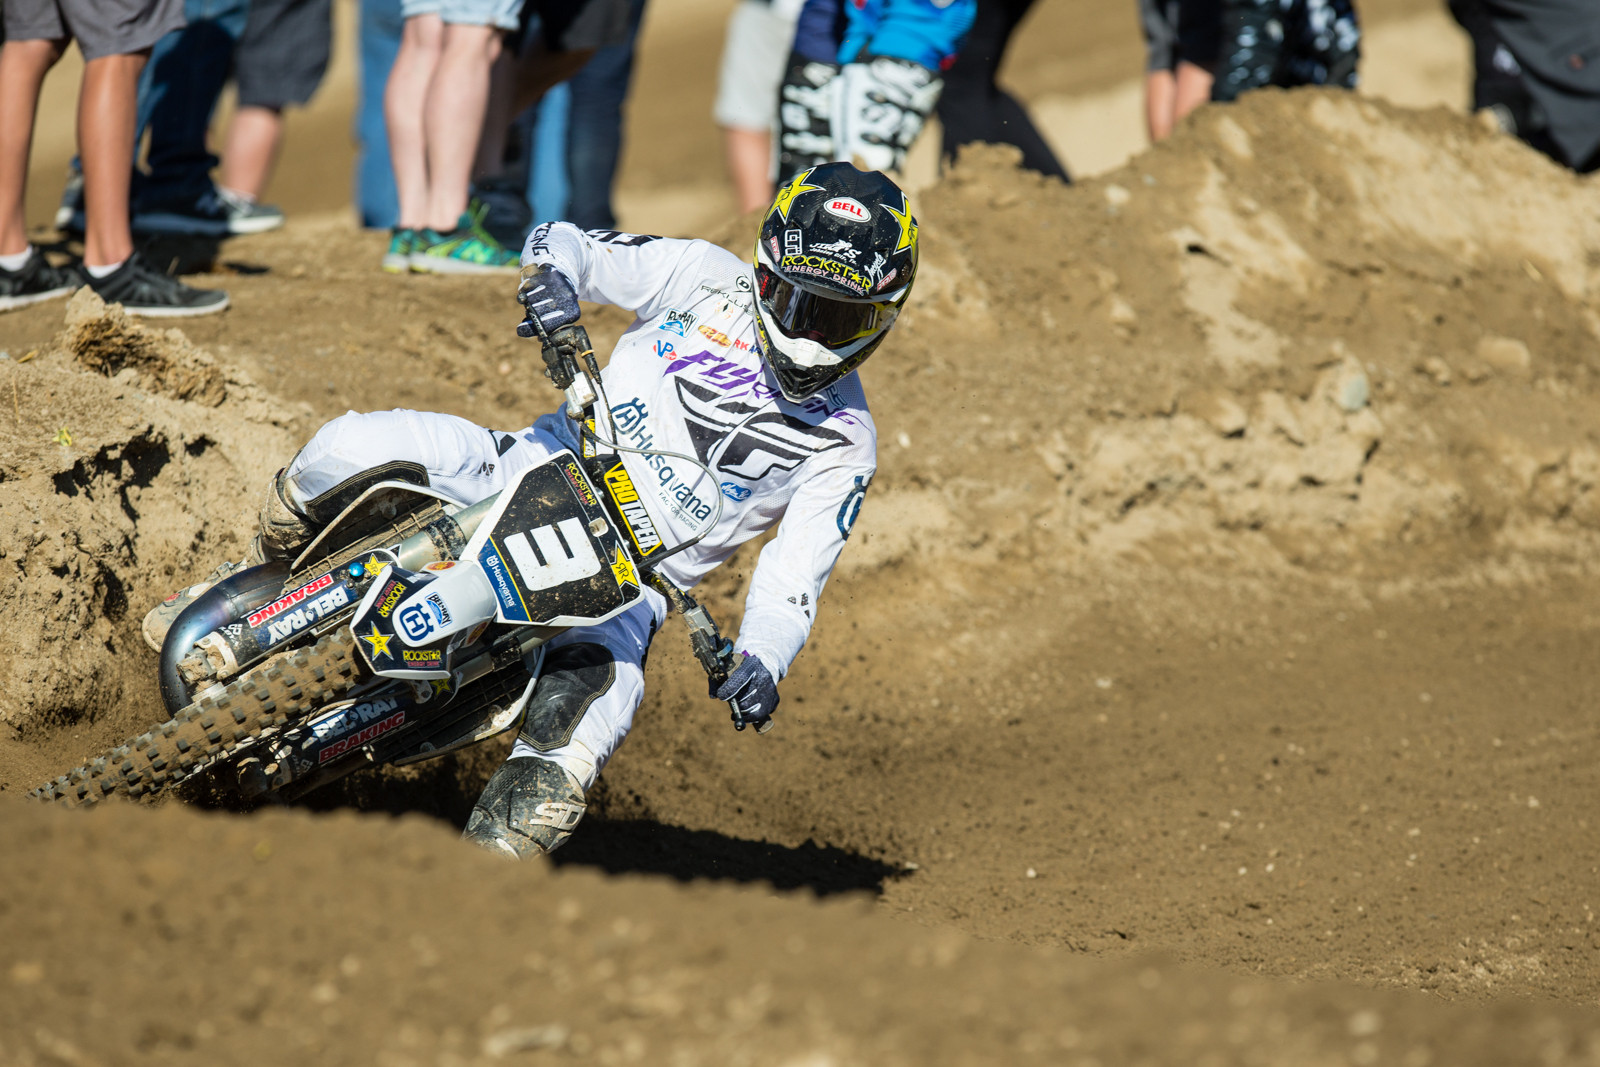 Mike Brown - 2016 MTA World Two-Stroke Nationals - Motocross Pictures - Vital MX